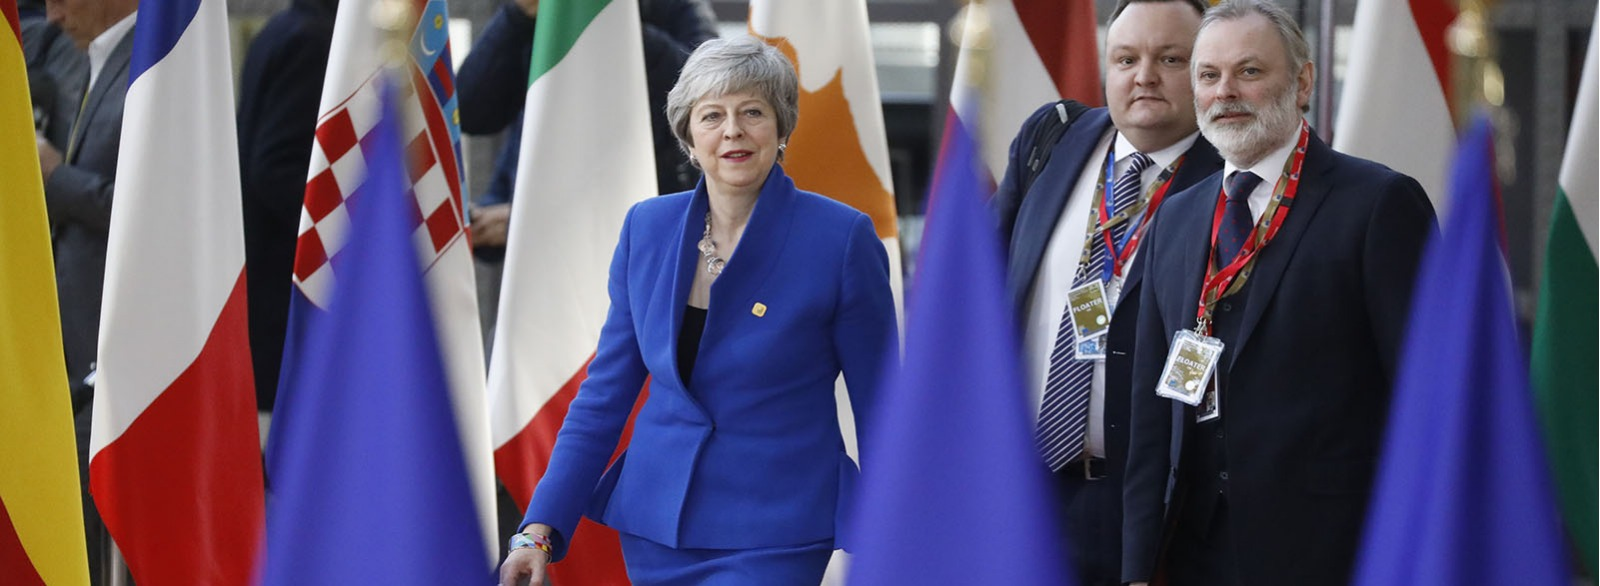 Theresa May l'européenne